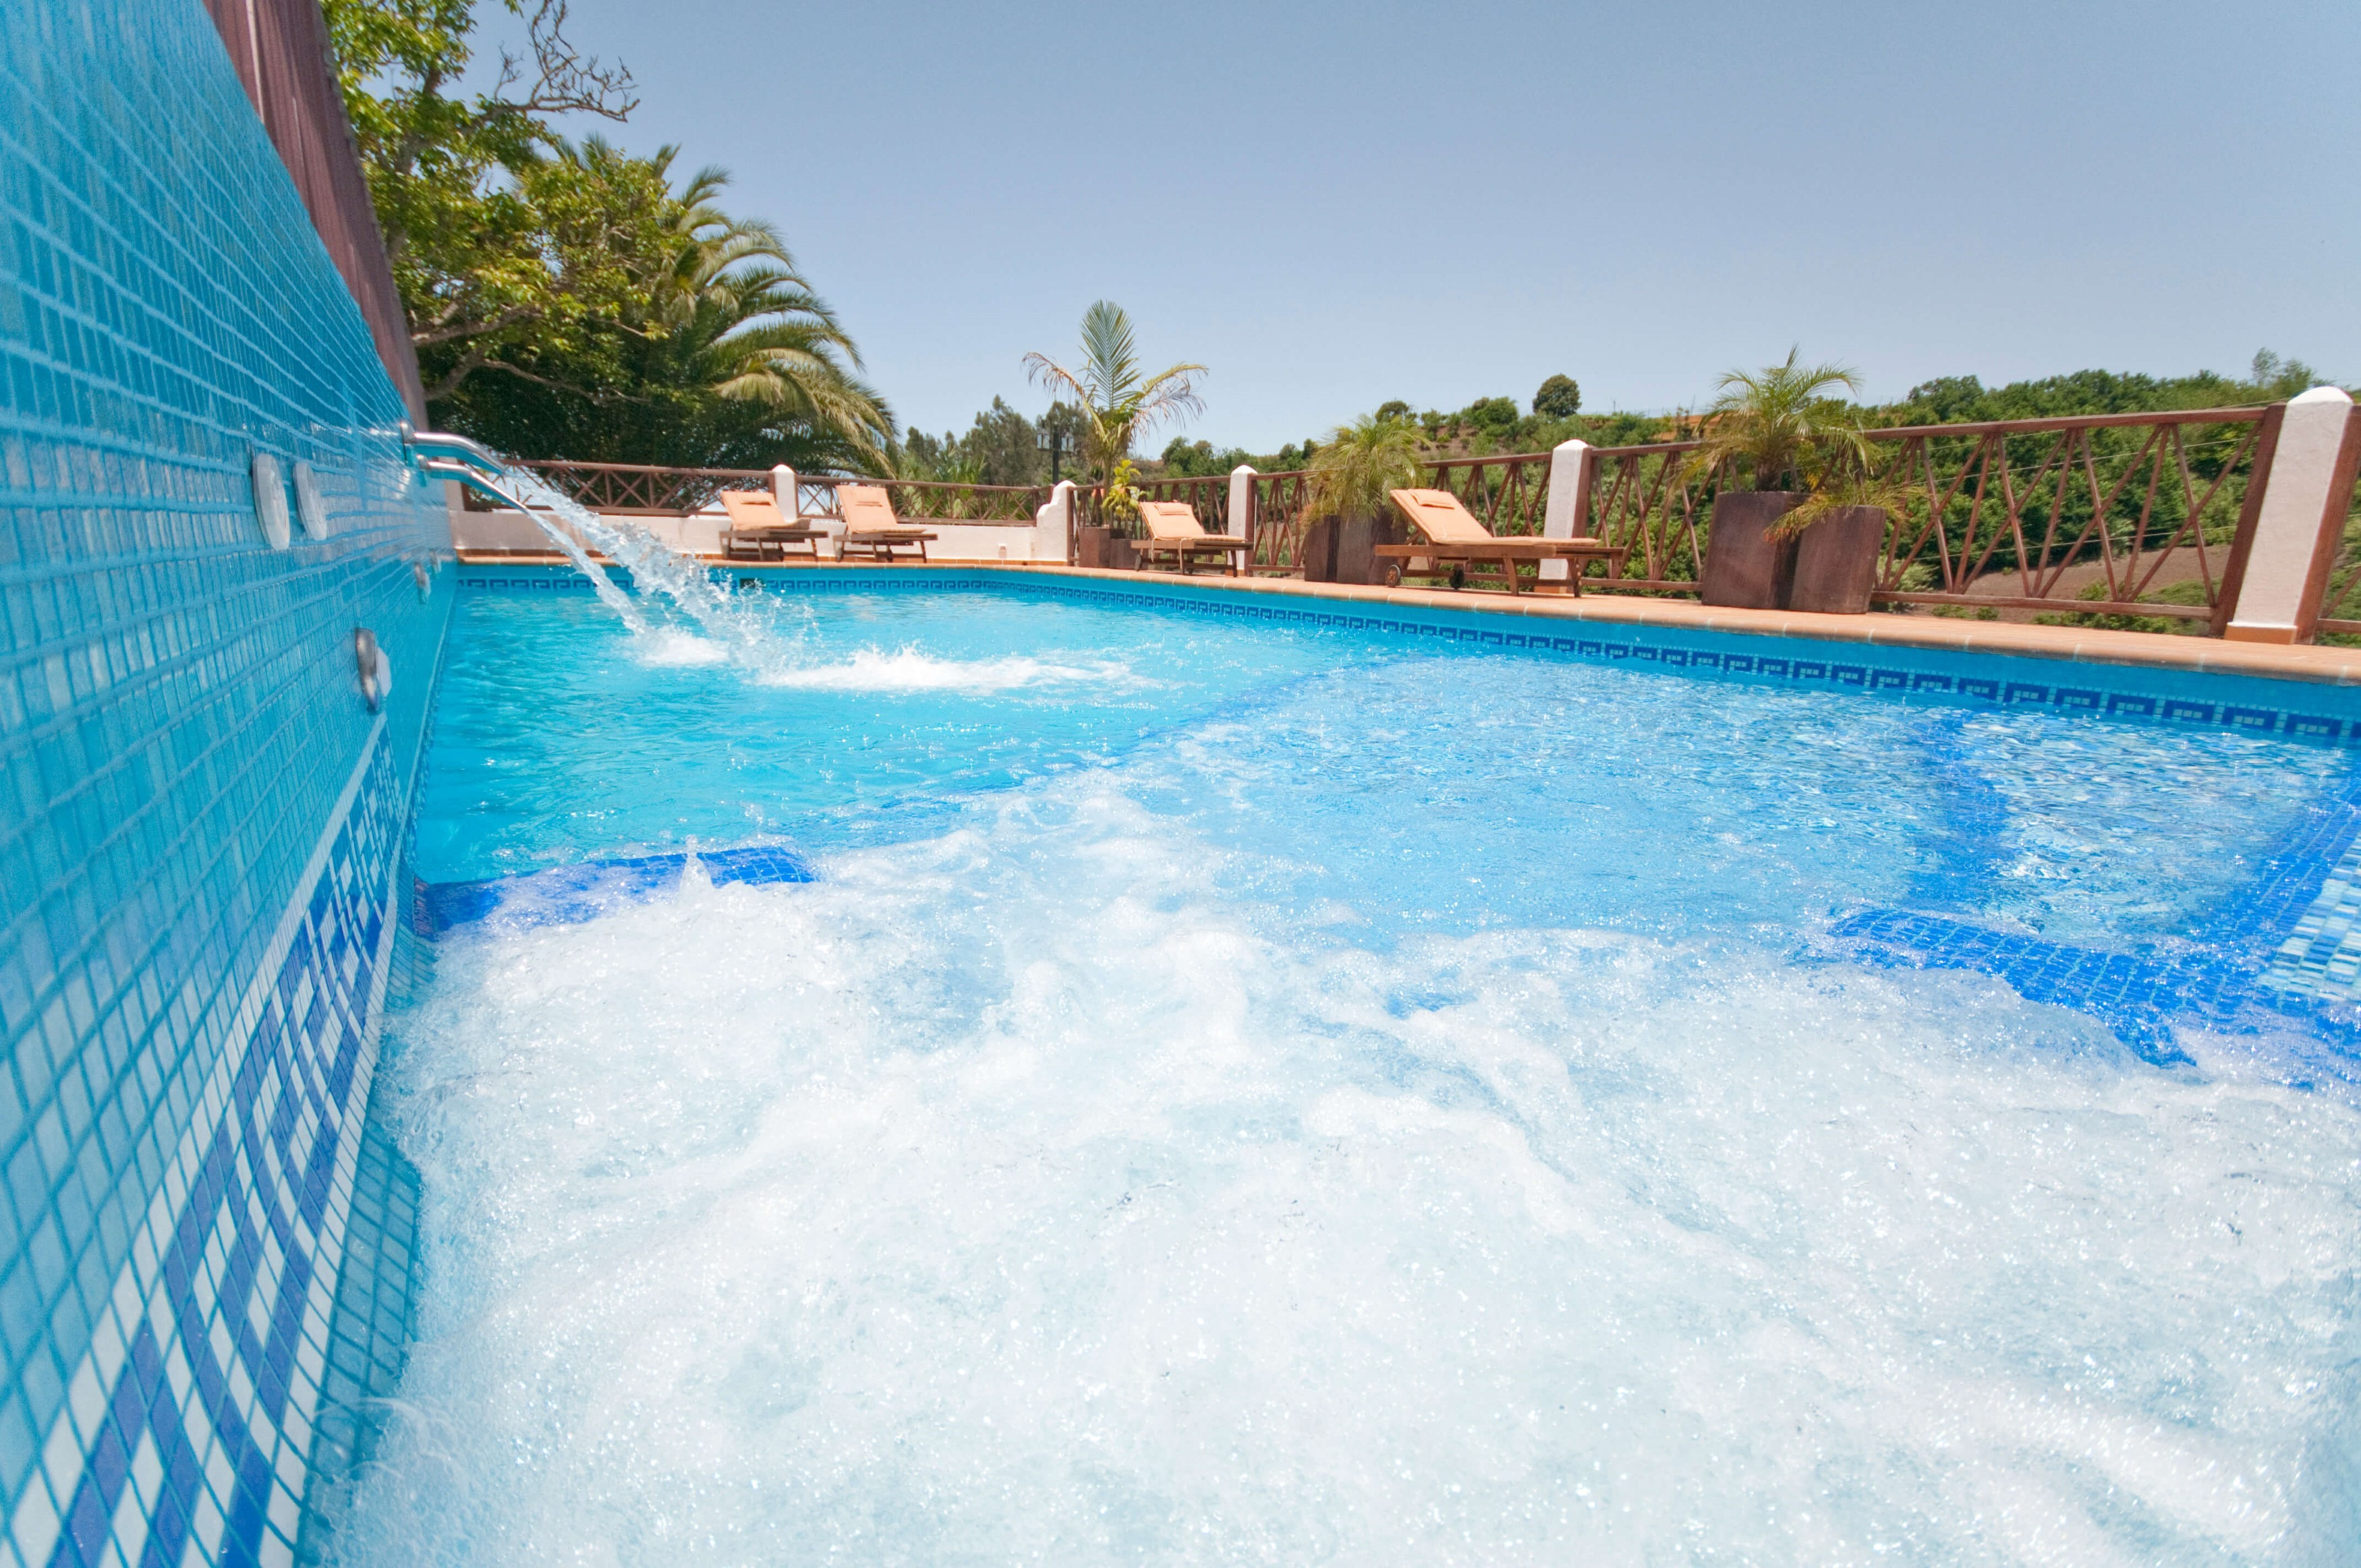 Maison de vacances House - 2 Bedrooms with Pool and WiFi - 106780 (2742989), San Fernando, Grande Canarie, Iles Canaries, Espagne, image 17